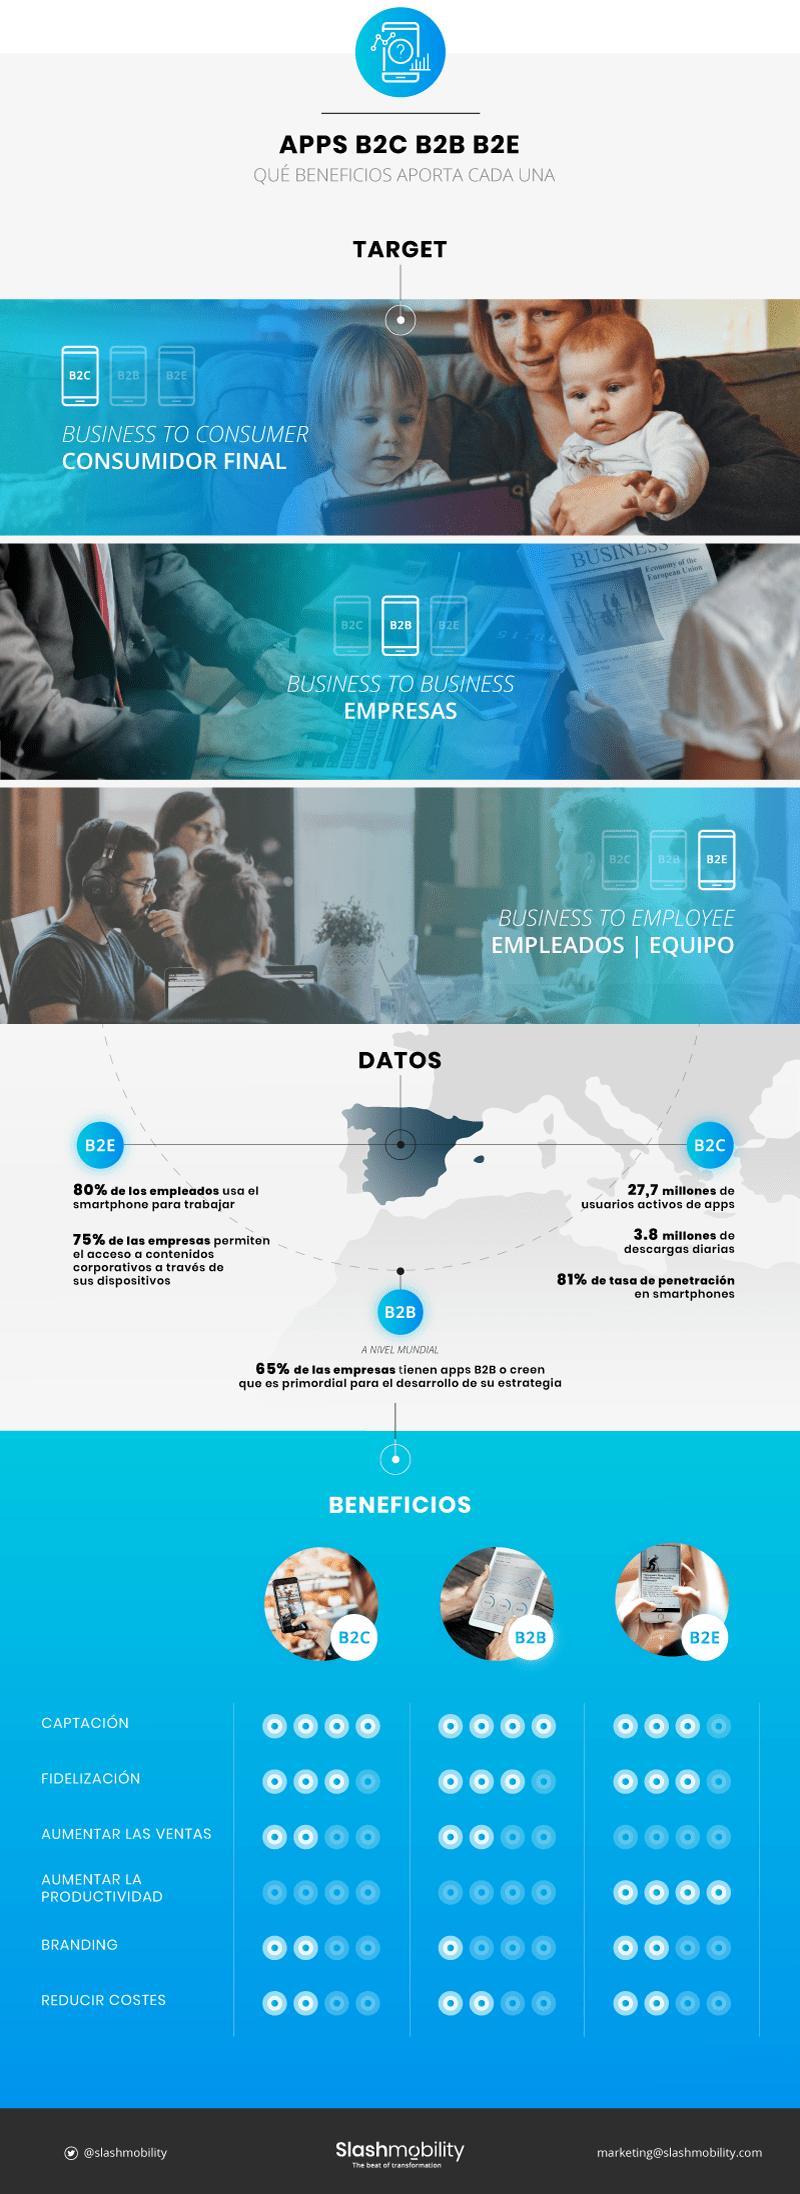 Para qué usar una App B2C – B2B – B2E #infografia #marketing #software